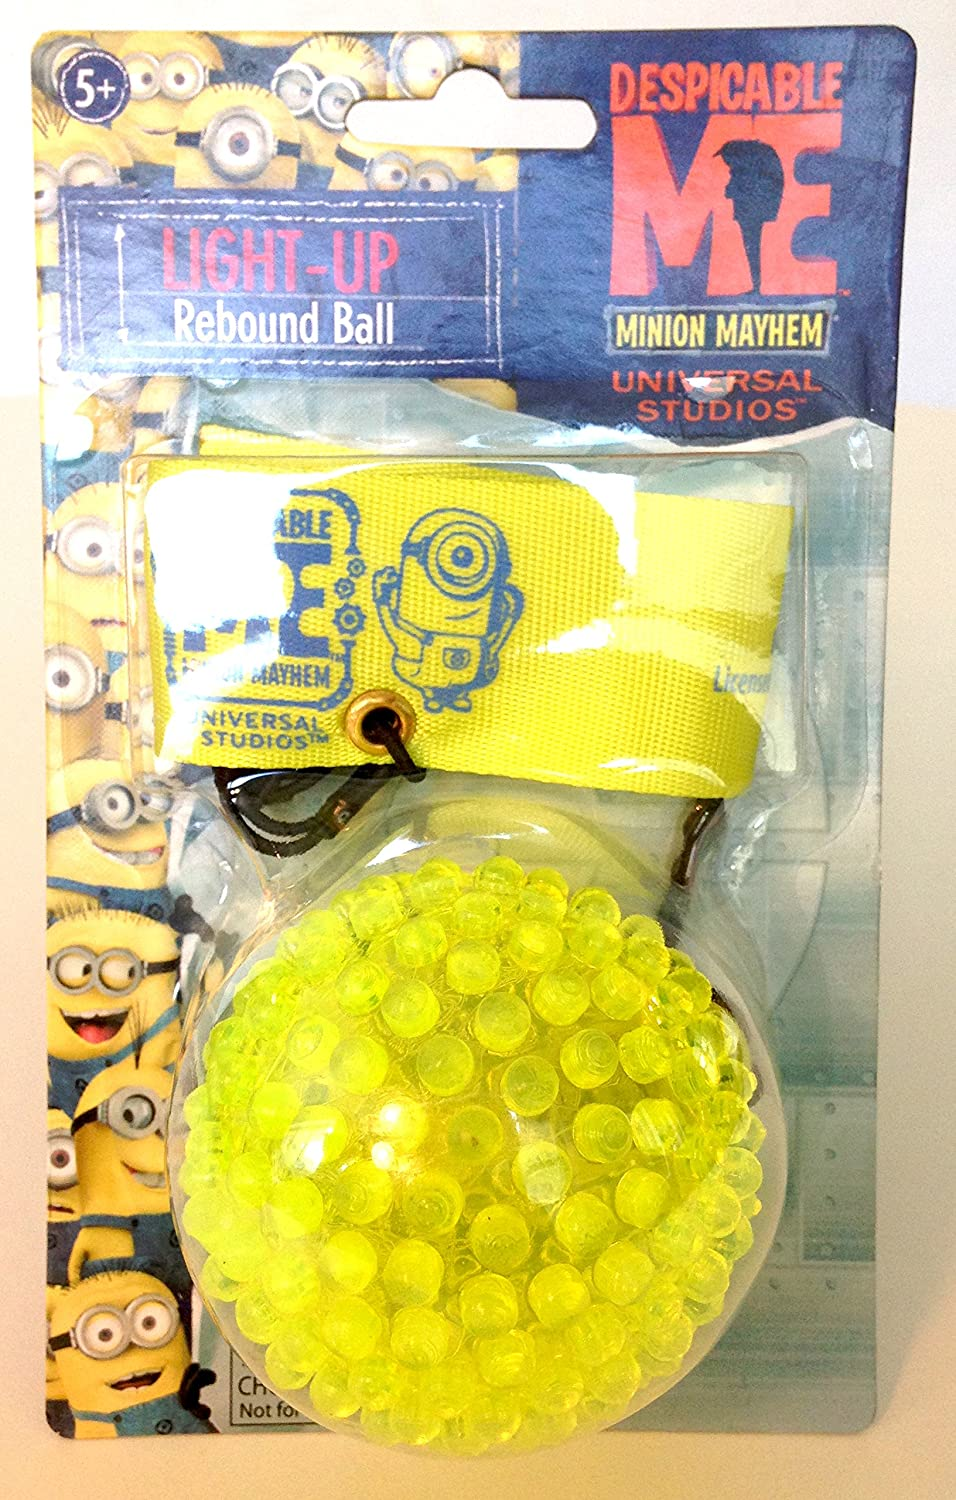 Nightzone light up rebound ball - Amazon Com Universal Studios Exclusive Despicable Me Minions Mayhem Light Up Flashing Rebound Ball With Stretch Cord And Velcro Strap Toys Games